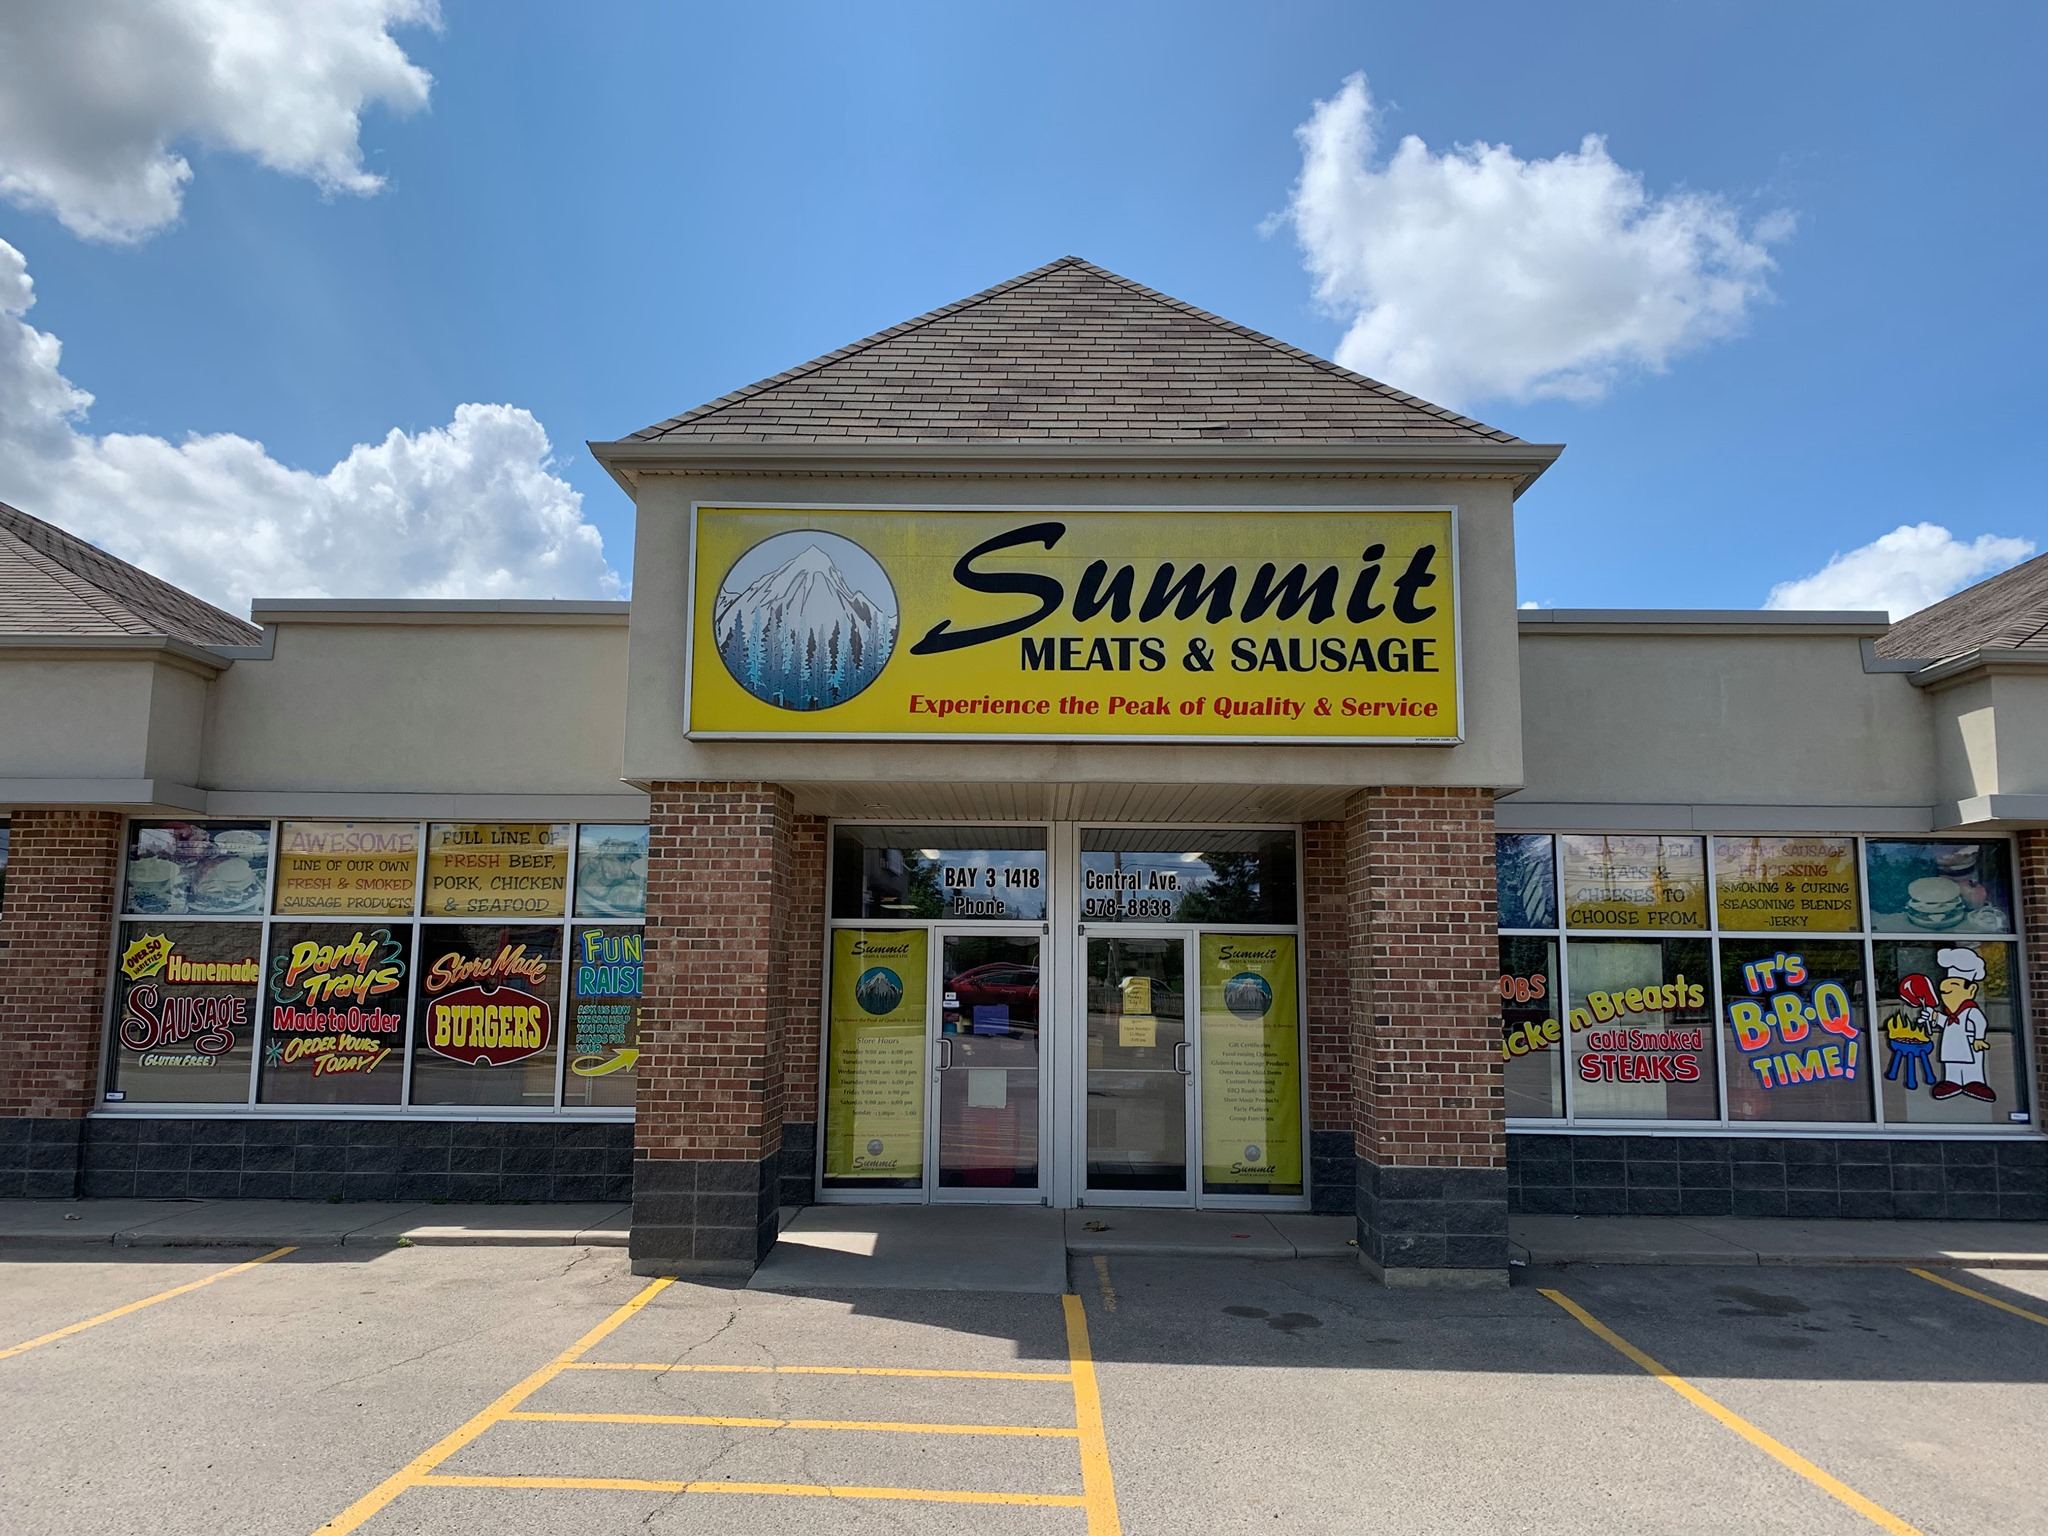 Photo taken of the Summit Meats and Sausage building exterior